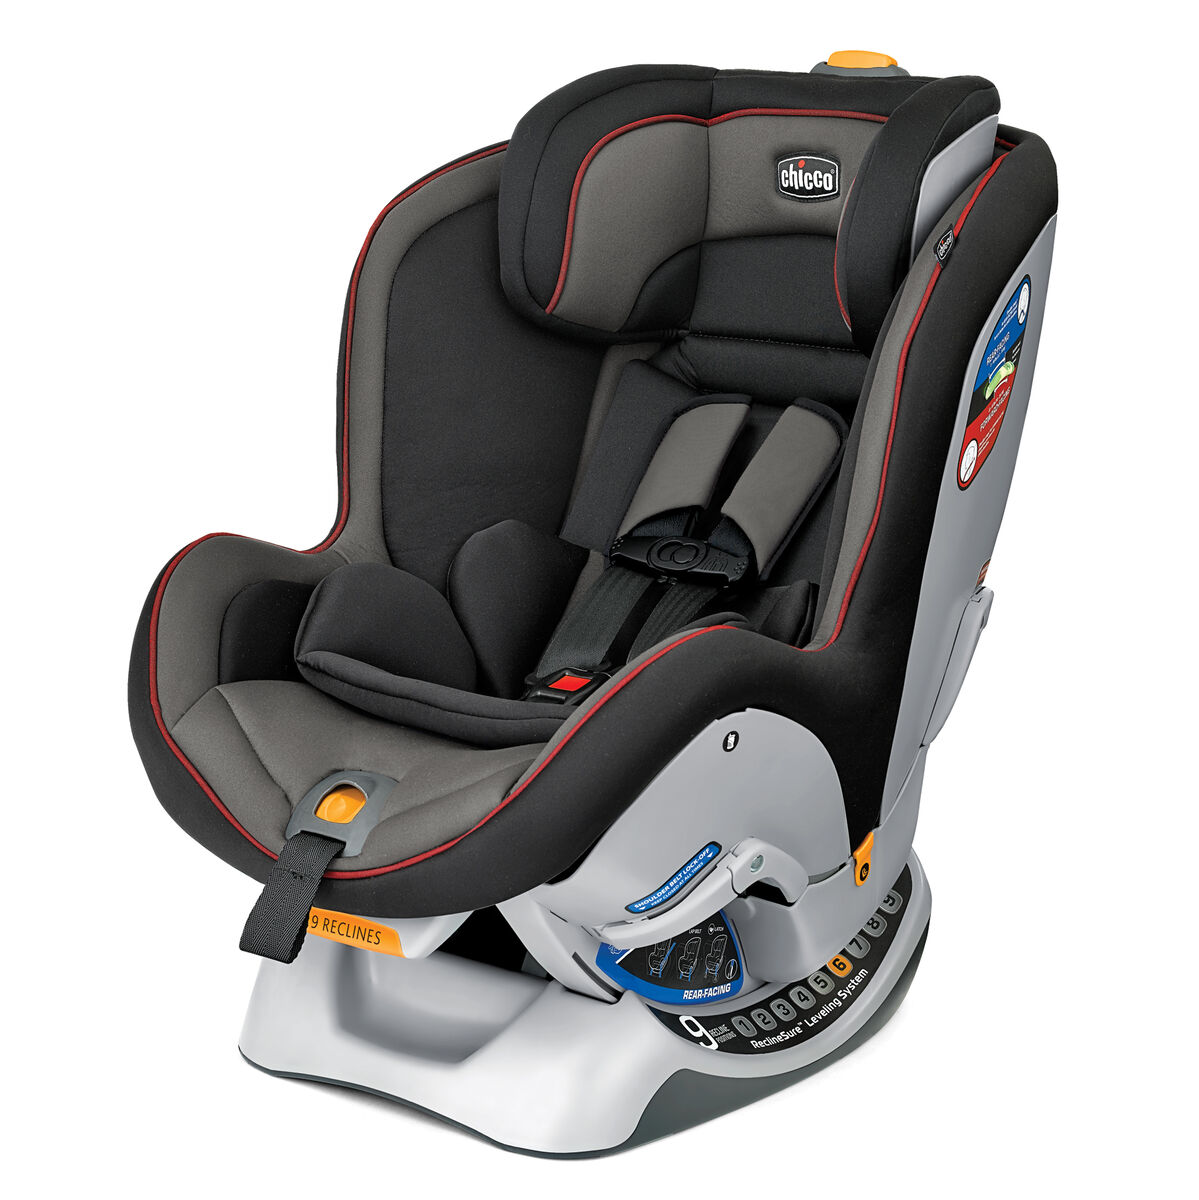 rear facing convertible car seat with stroller. Black Bedroom Furniture Sets. Home Design Ideas